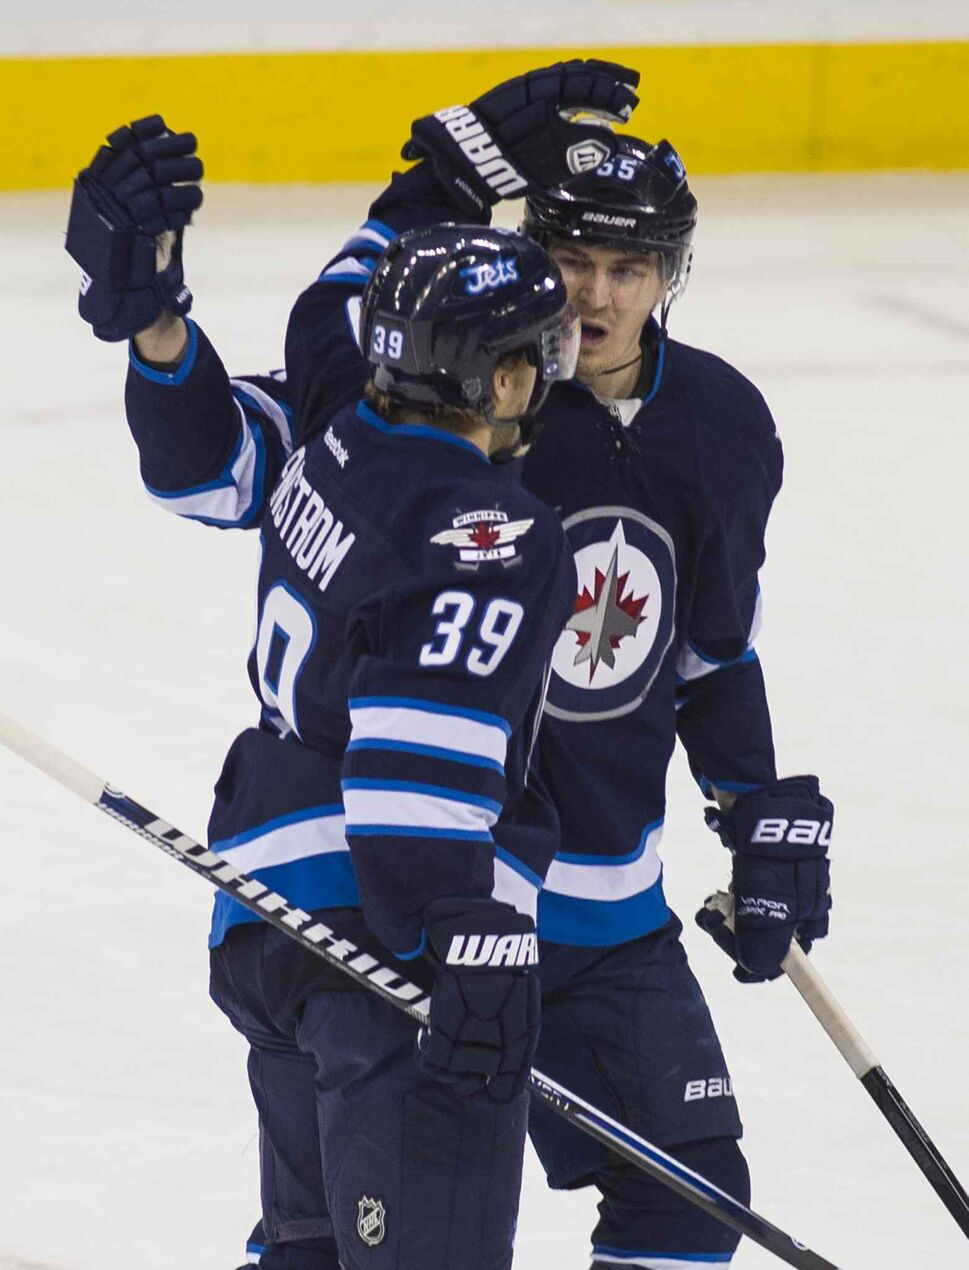 Winnipeg Jets Tobias Enstrom (#39) celebrates his goal during the first period. (DAVID LIPNOWSKI / WINNIPEG FREE PRESS )